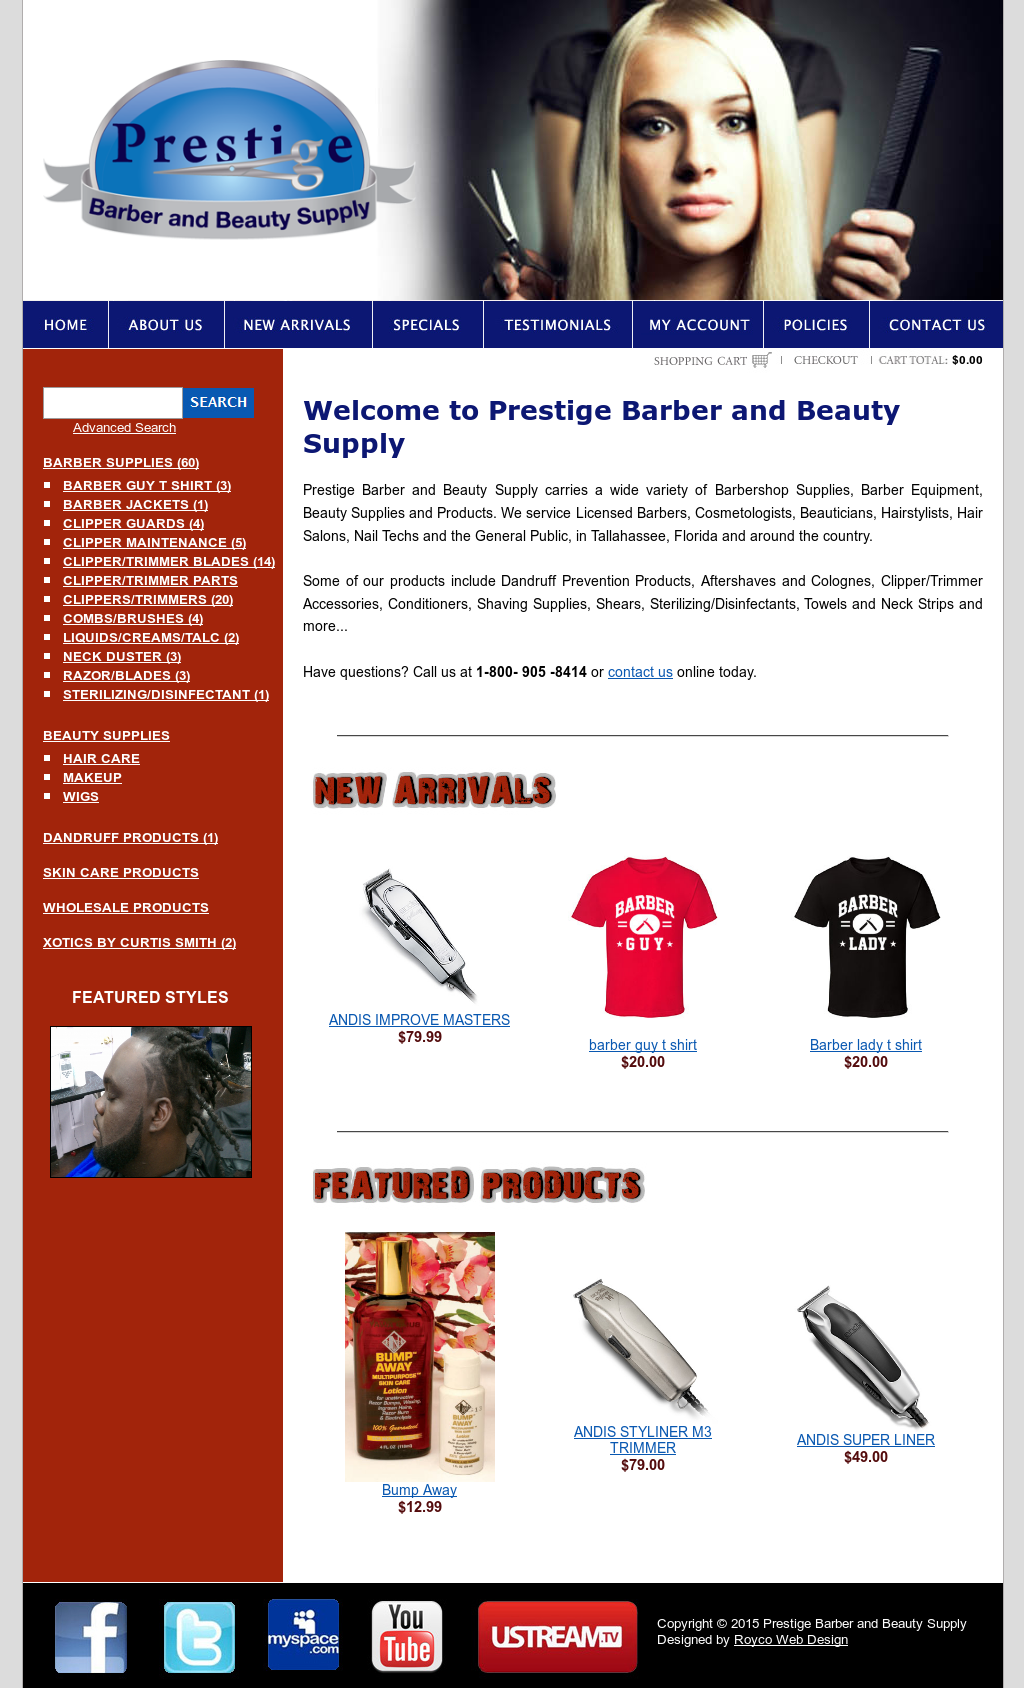 Prestige Barber And Beauty Supply Competitors, Revenue and Employees - Owler Company Profile